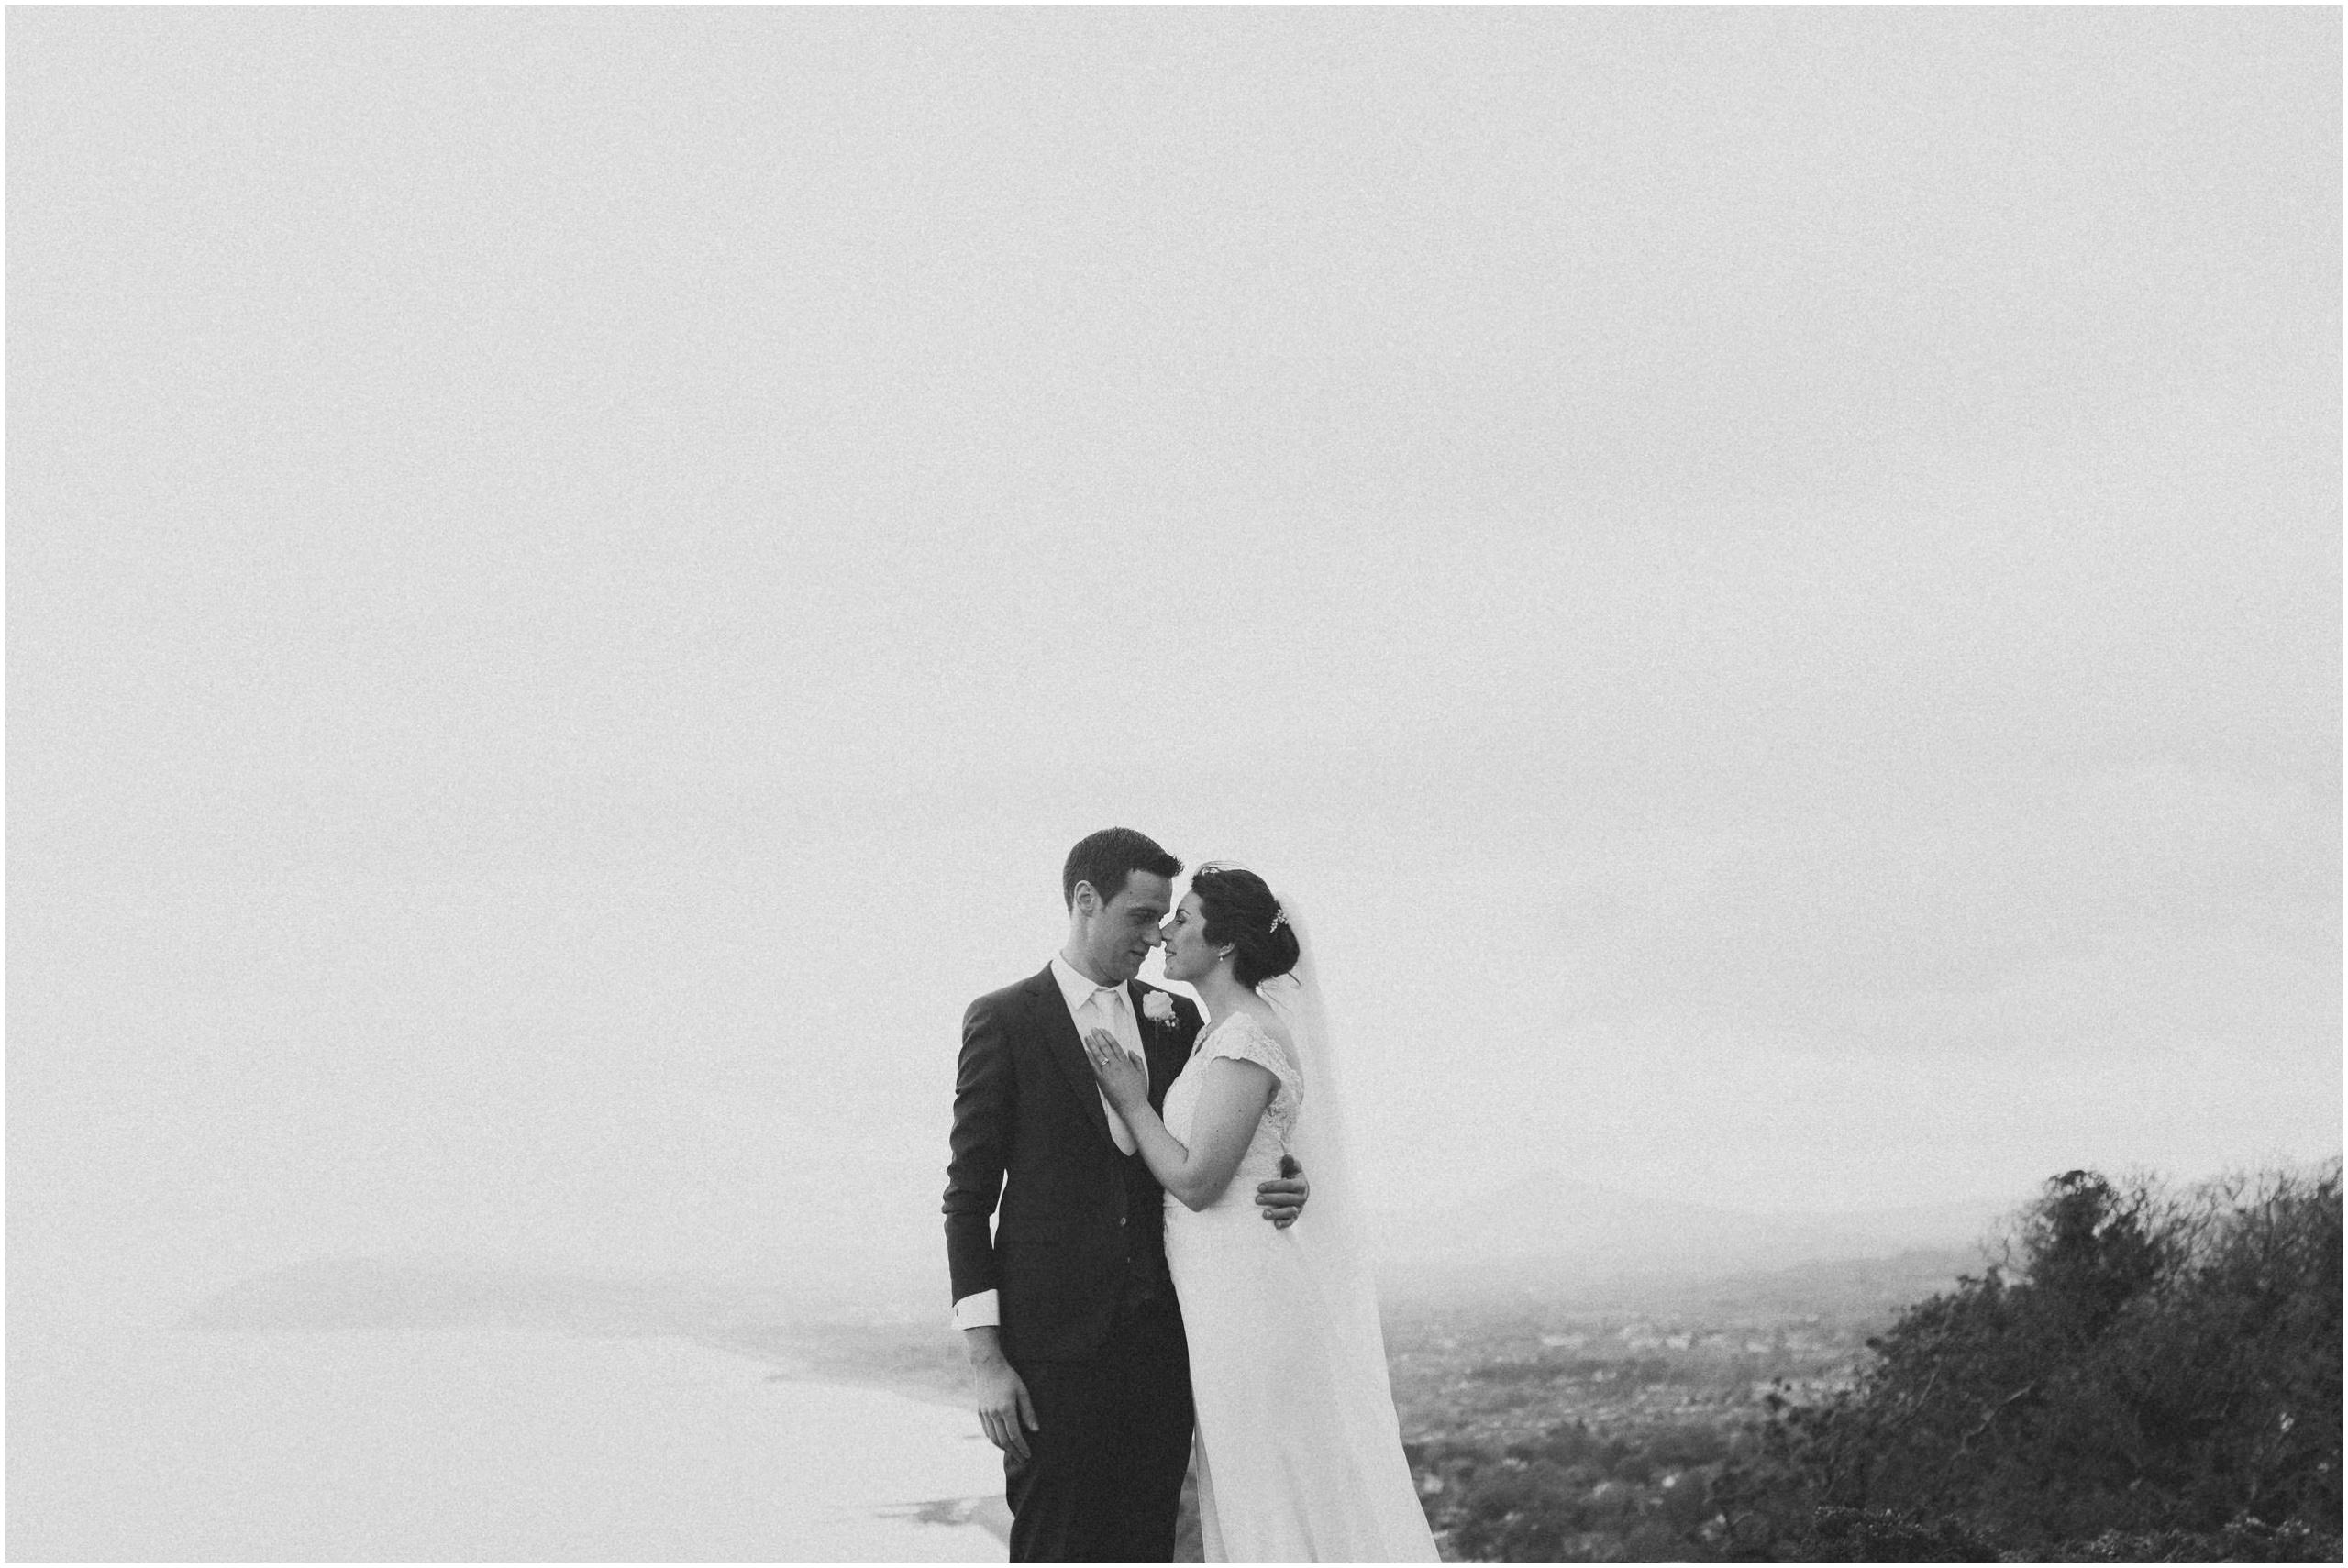 Johnny Corcoran Photography Killiney hill Royal Marine 00110 - Fun and Relaxed wedding and elopement photography in Ireland, perfect for adventurous and outdoorsy couples